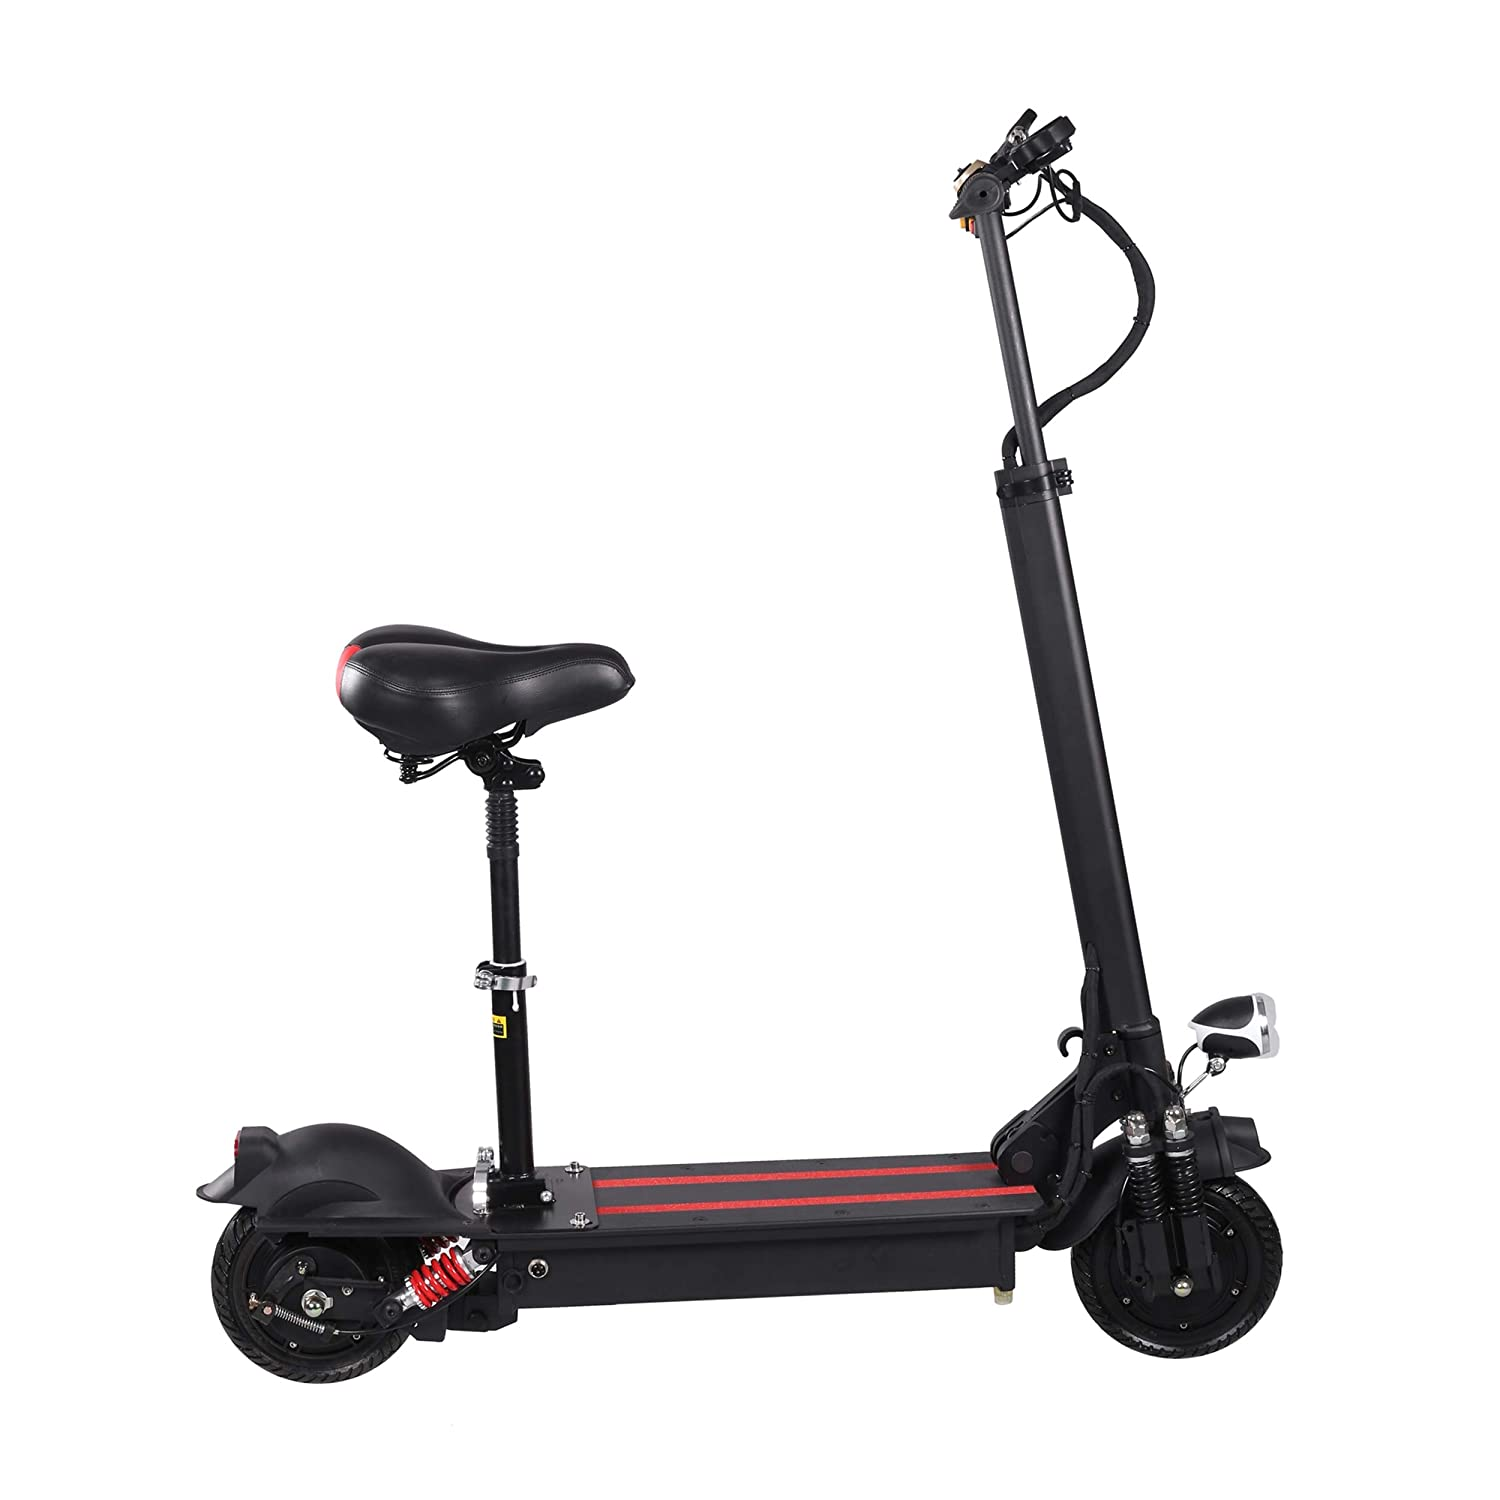 XULONG Electric Scooters Adult Foldable, 200 kg Max Load with Seat 10 Inch 60km/H, Lithium Battery 48V 8AH, 1500W Dual Motor Drive with LED Light and HD Display,80kmrange